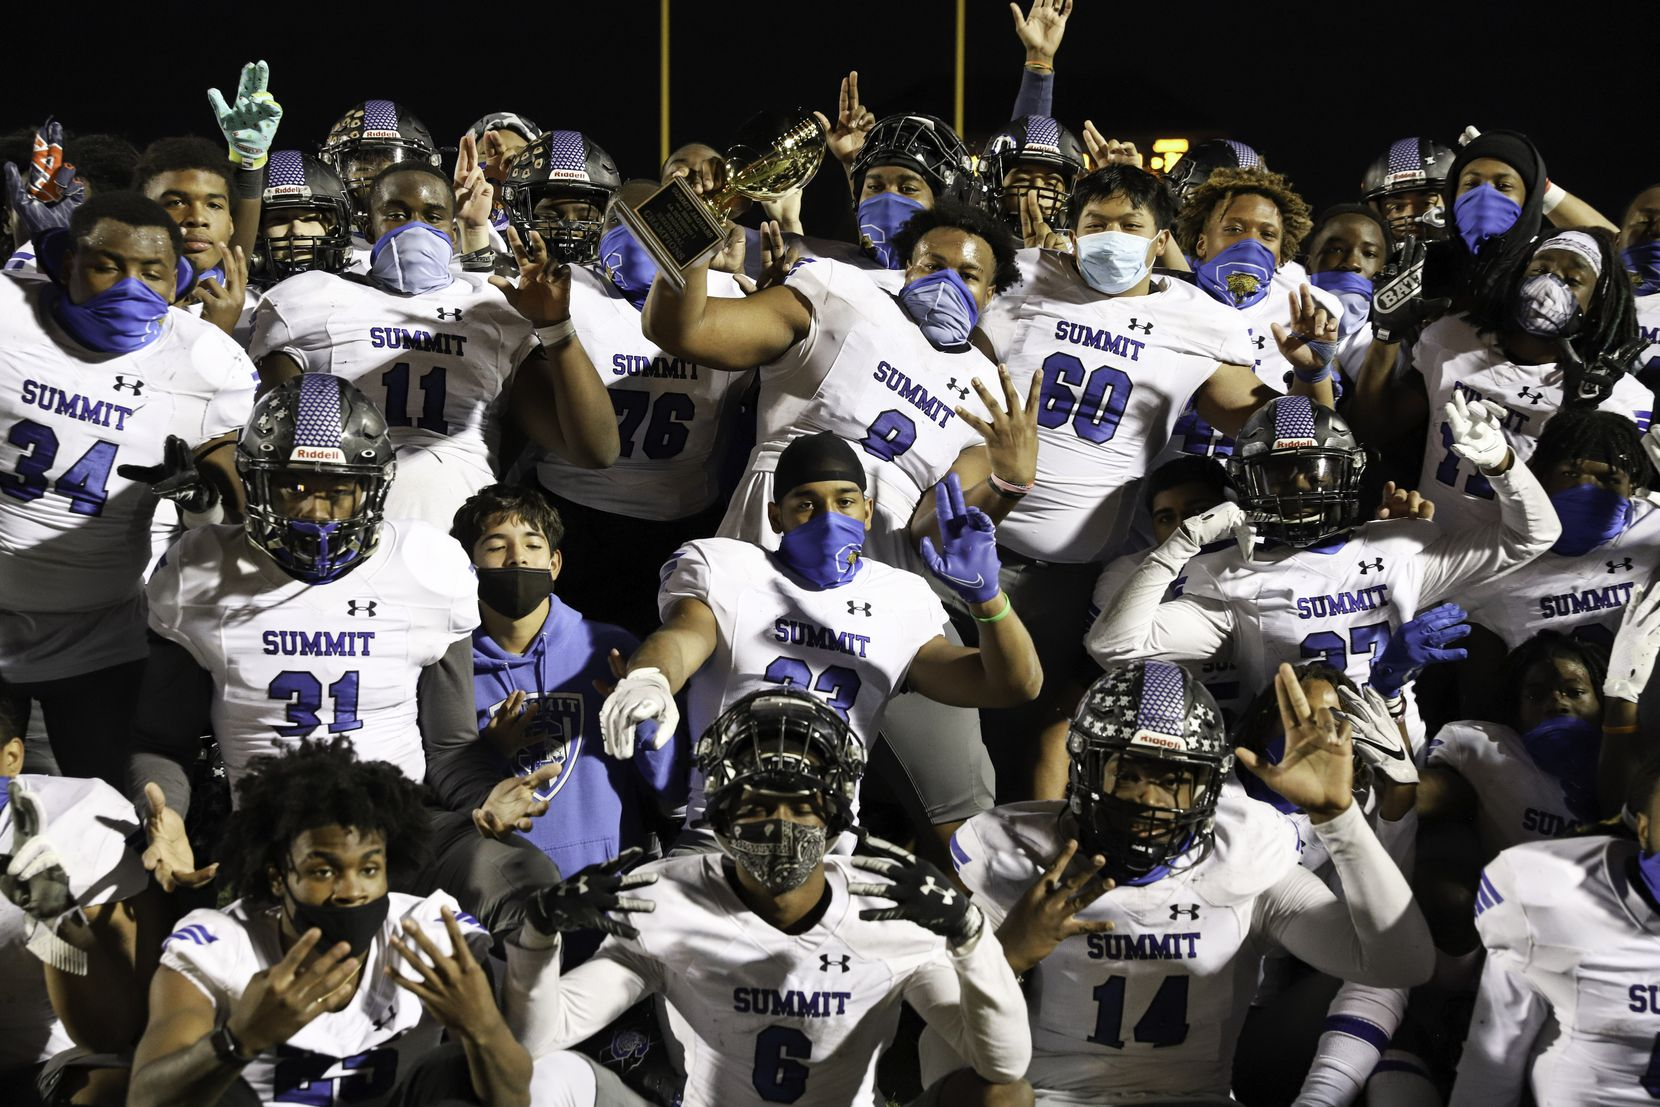 The Mansfield Summit football team poses with the regional championship trophy after defeating Colleyville Heritage at Bearcat Stadium in Aledo, Texas, Saturday, December 26, 2020. (Elias Valverde II / Special Contributor)